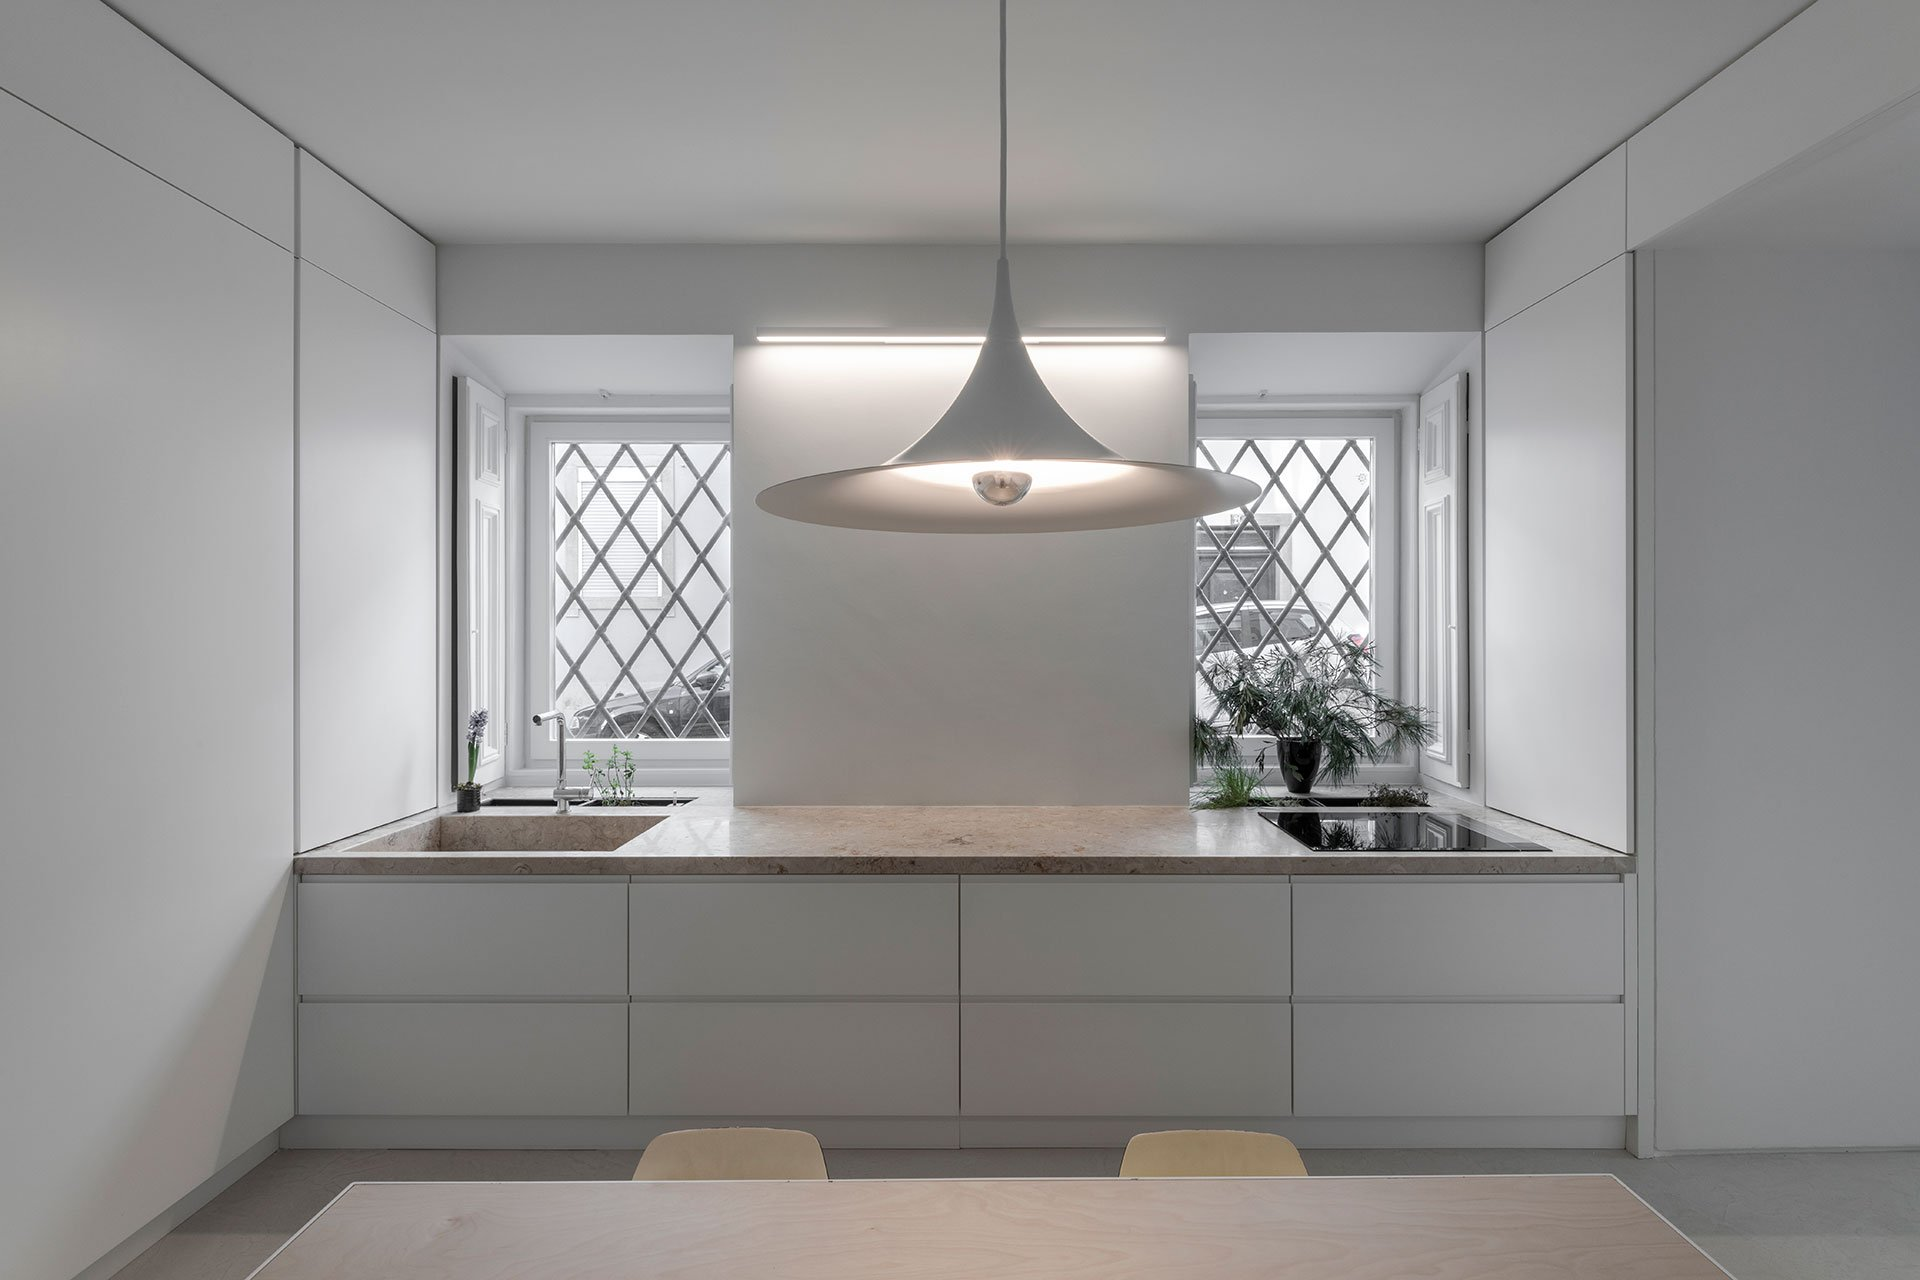 The kitchen is pure white, with sleekcabinets, a stone countertop, a cool pendant lamp